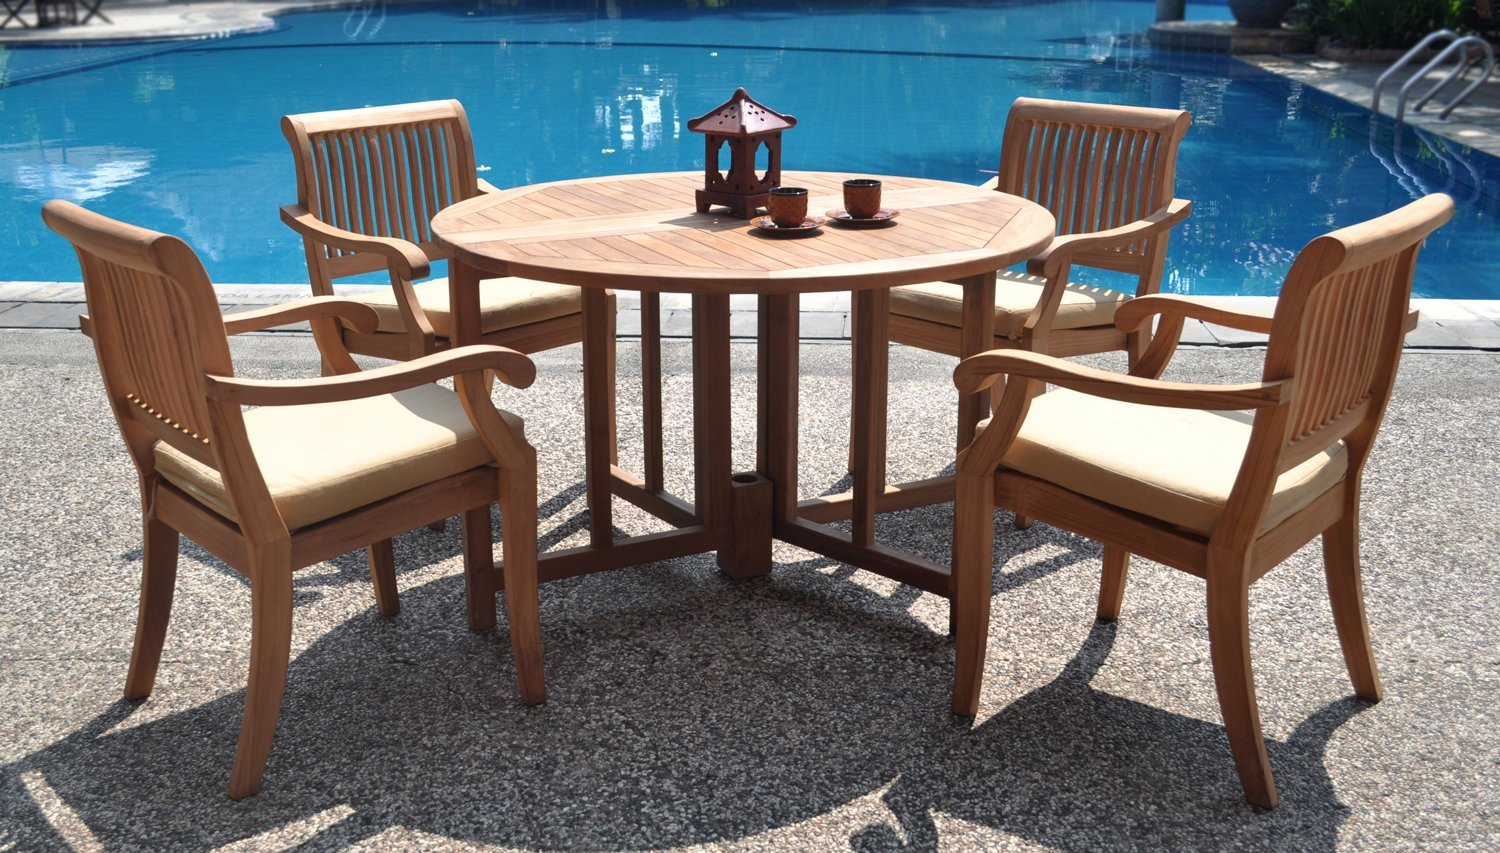 Outdoor Wooden Furniture Archives Wooden Furniture Hub